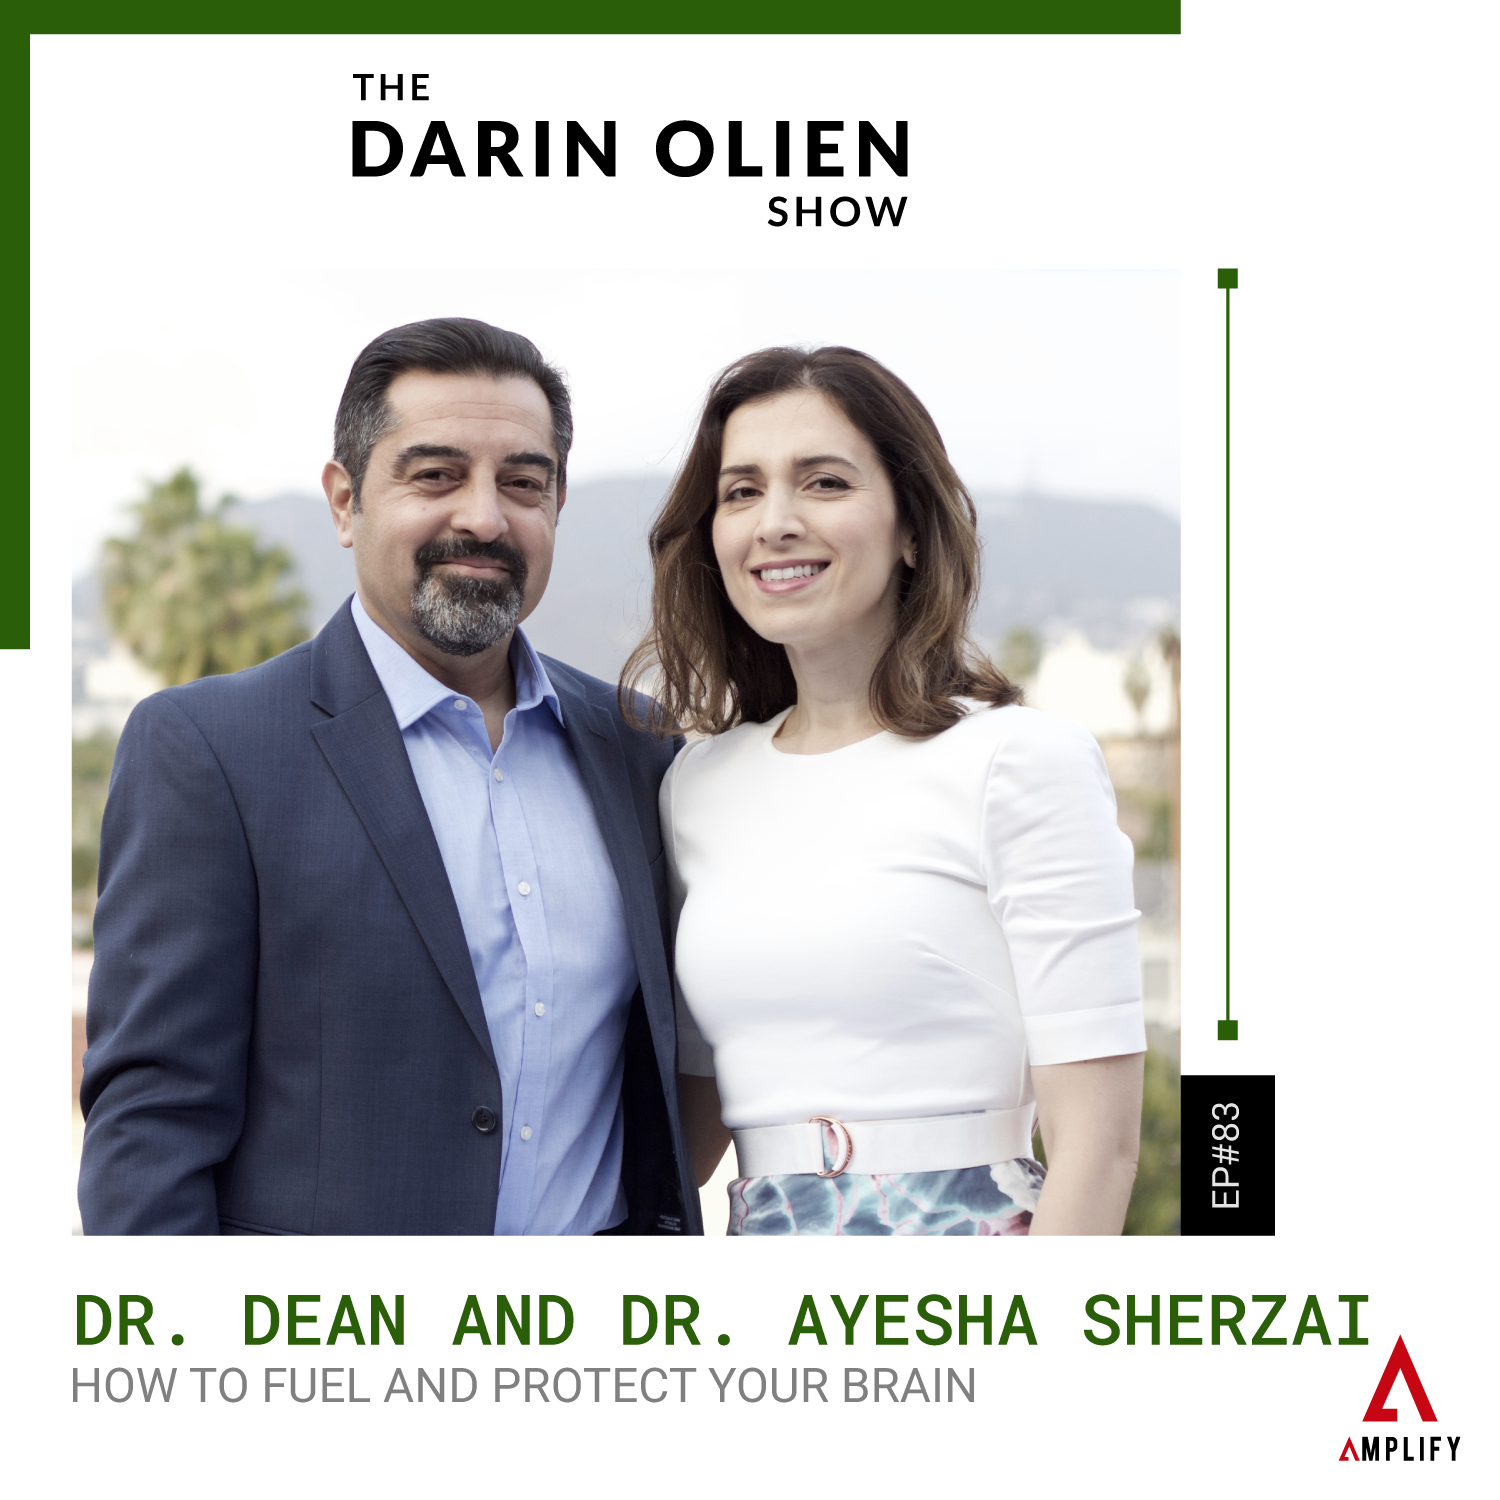 decorative image with the episode title and a picture of Dr Dean and Dr Ayesha Sherzai